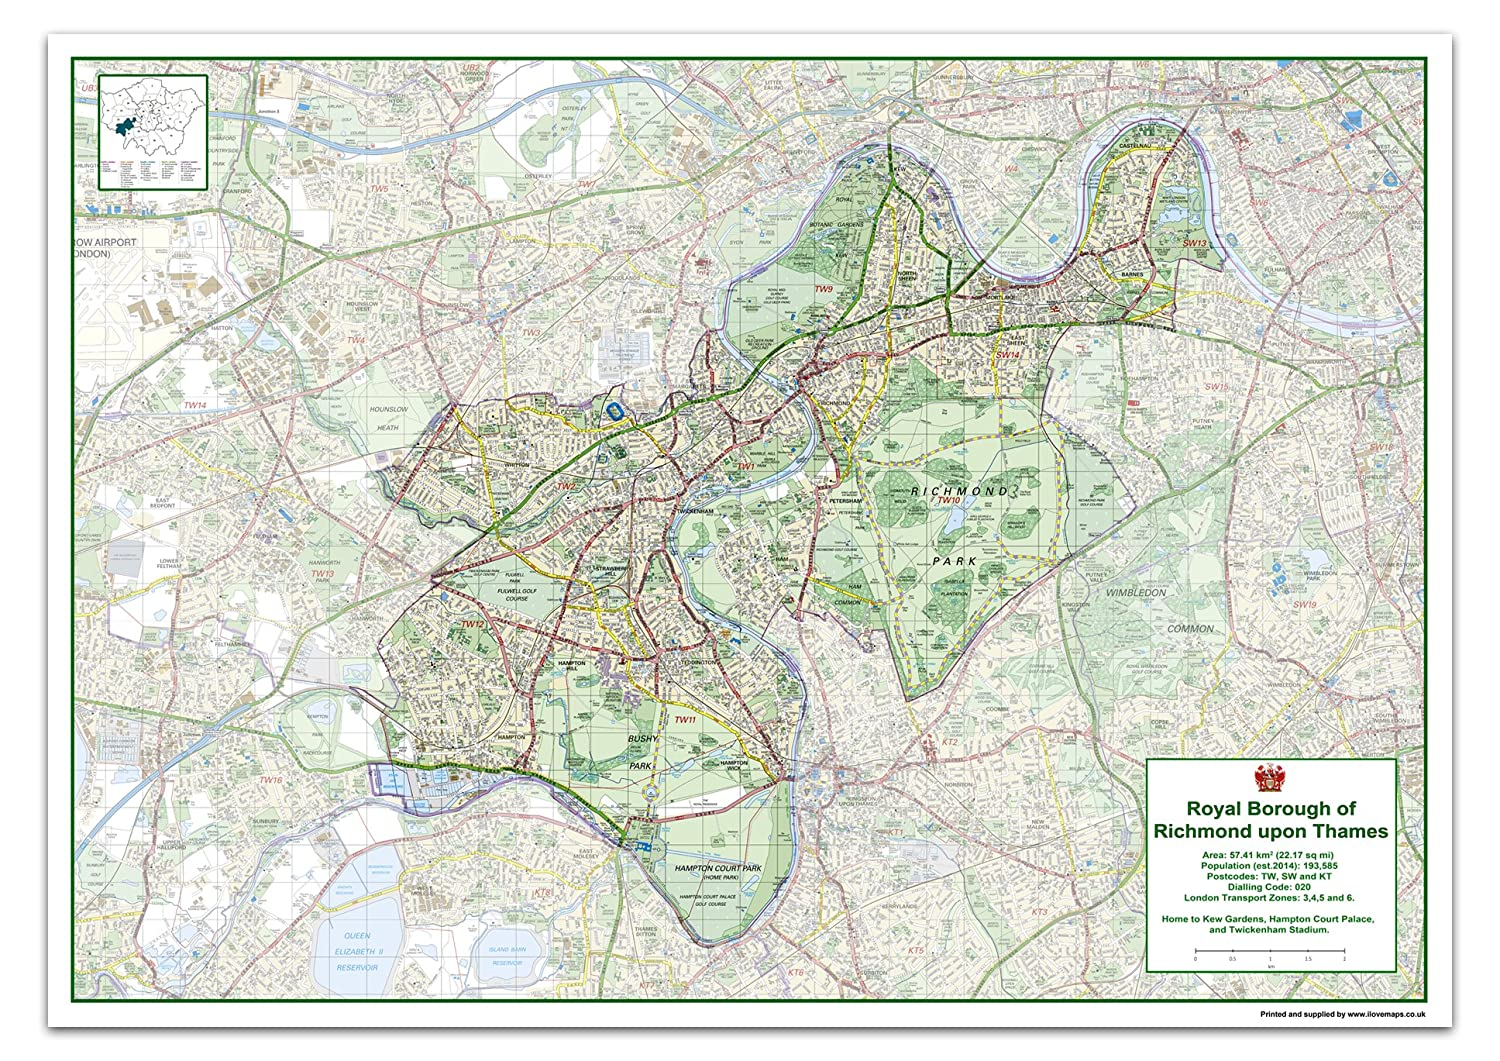 London Borough Of Richmond Upon Thames Map Size 118 9 X 84 1 Cm